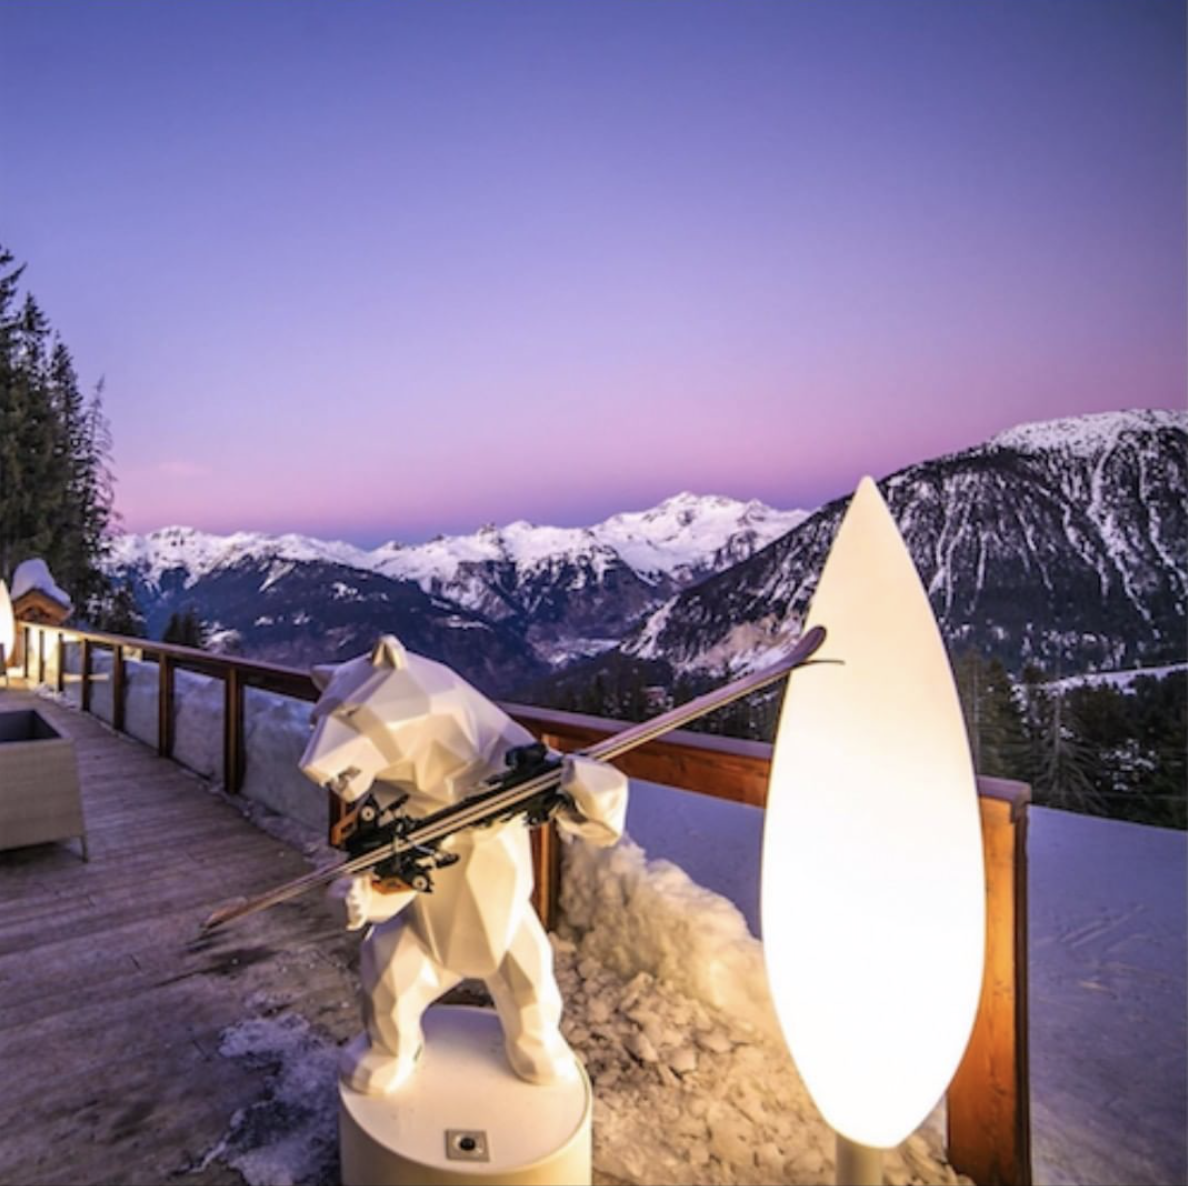 Sunset at Le Strato skiroom 🌄  #lestrato #strato #orlinski #richardorlinski #bear #Rossignolski #ski #skiroom #hotel #hotel5* #View #sunset #courchevel #amazingview #wintermood #bernardorcel